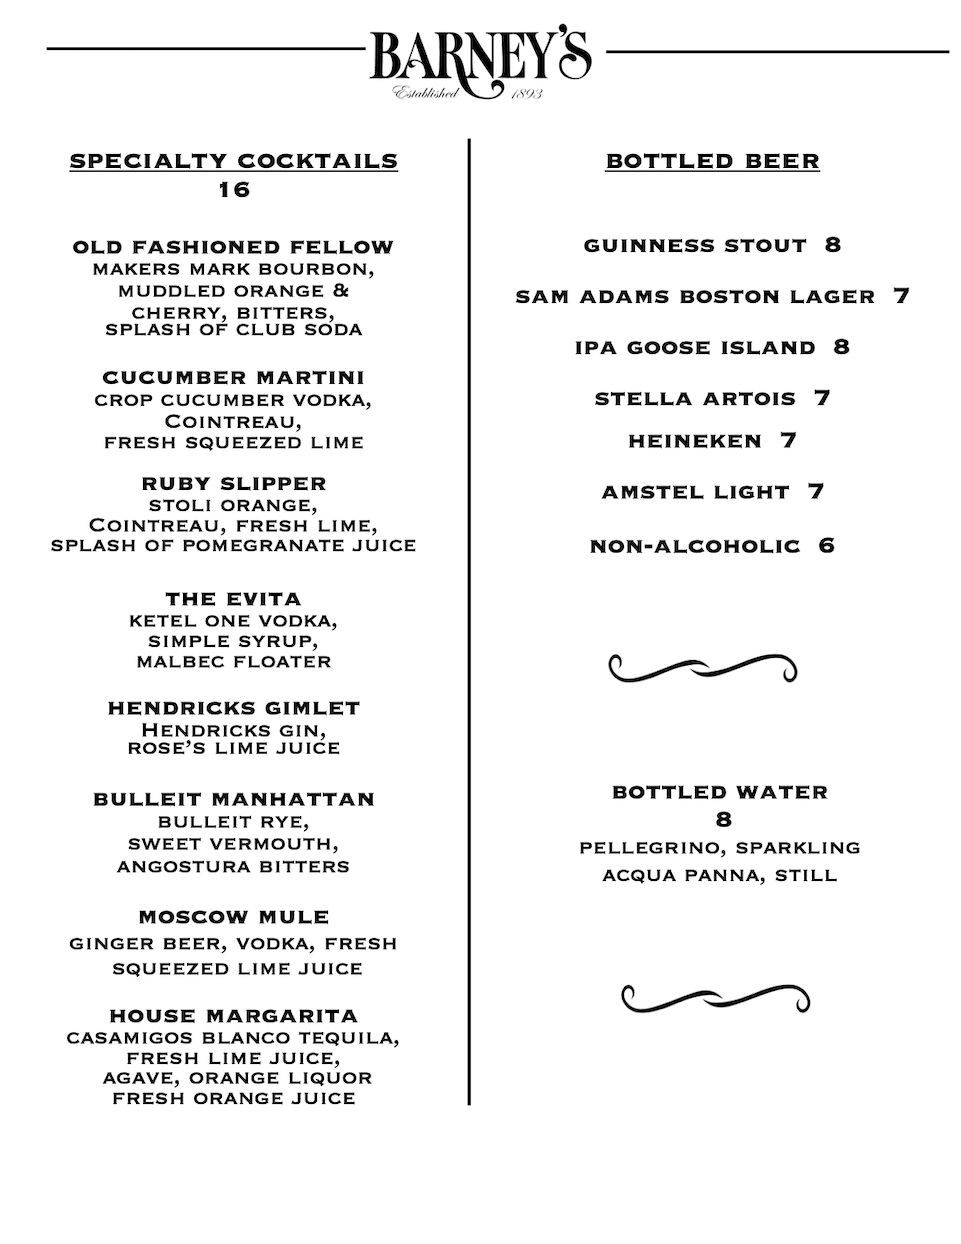 Specialty cocktails and drinks